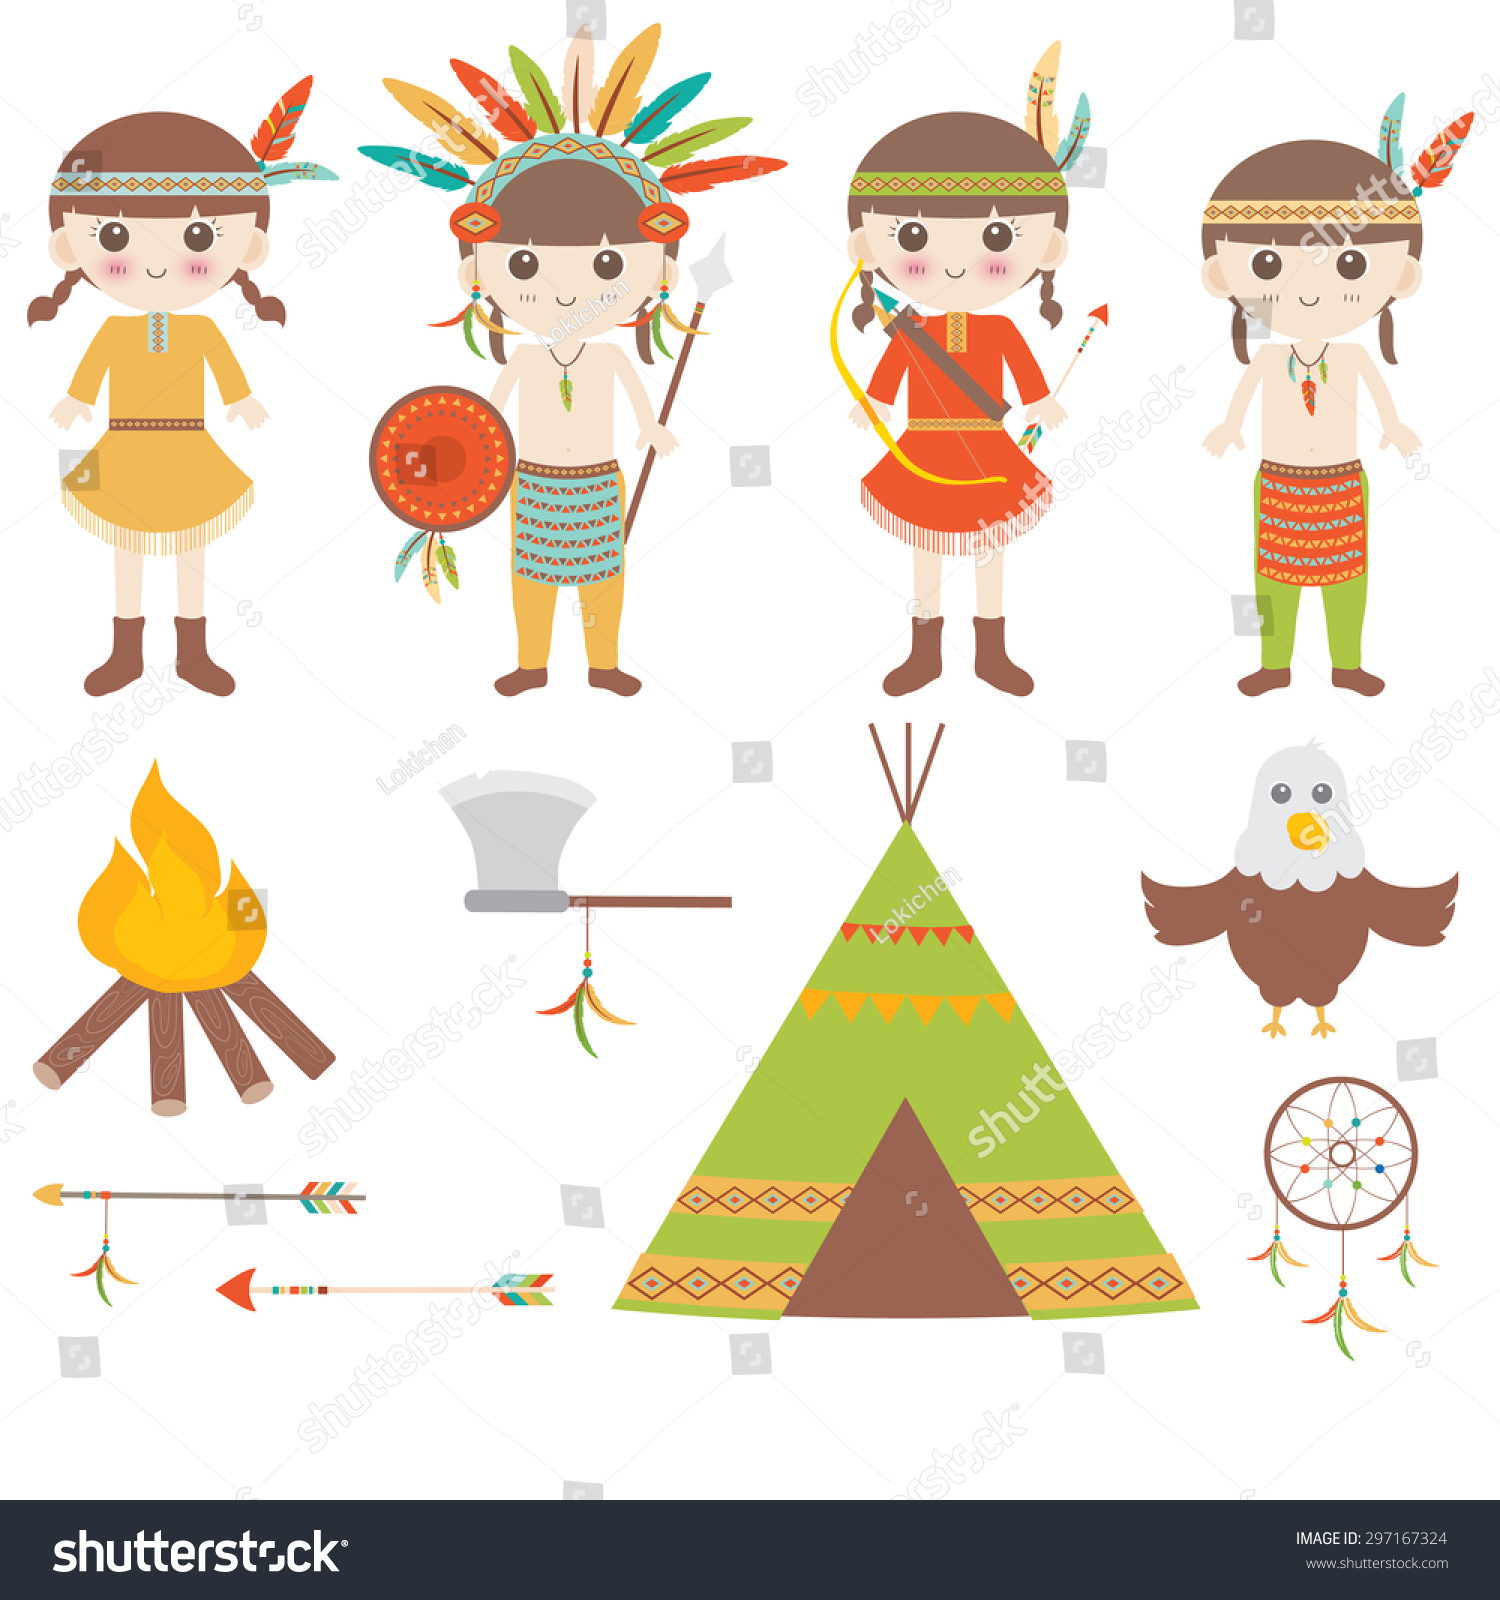 hight resolution of american indian clipart icons design